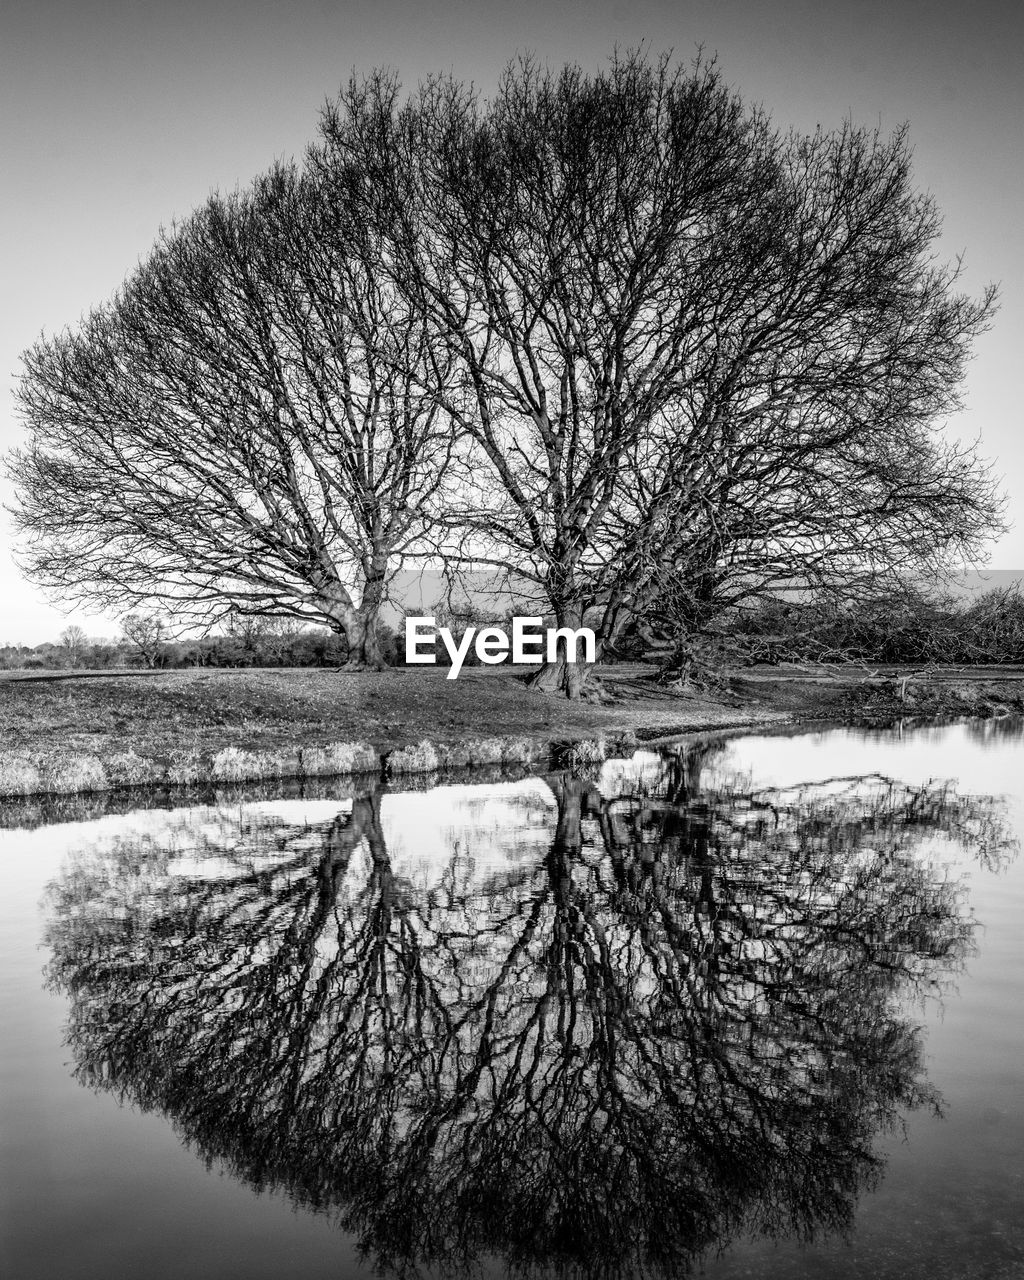 tree, water, tranquility, plant, bare tree, reflection, tranquil scene, lake, nature, scenics - nature, no people, beauty in nature, sky, day, waterfront, cold temperature, non-urban scene, landscape, winter, outdoors